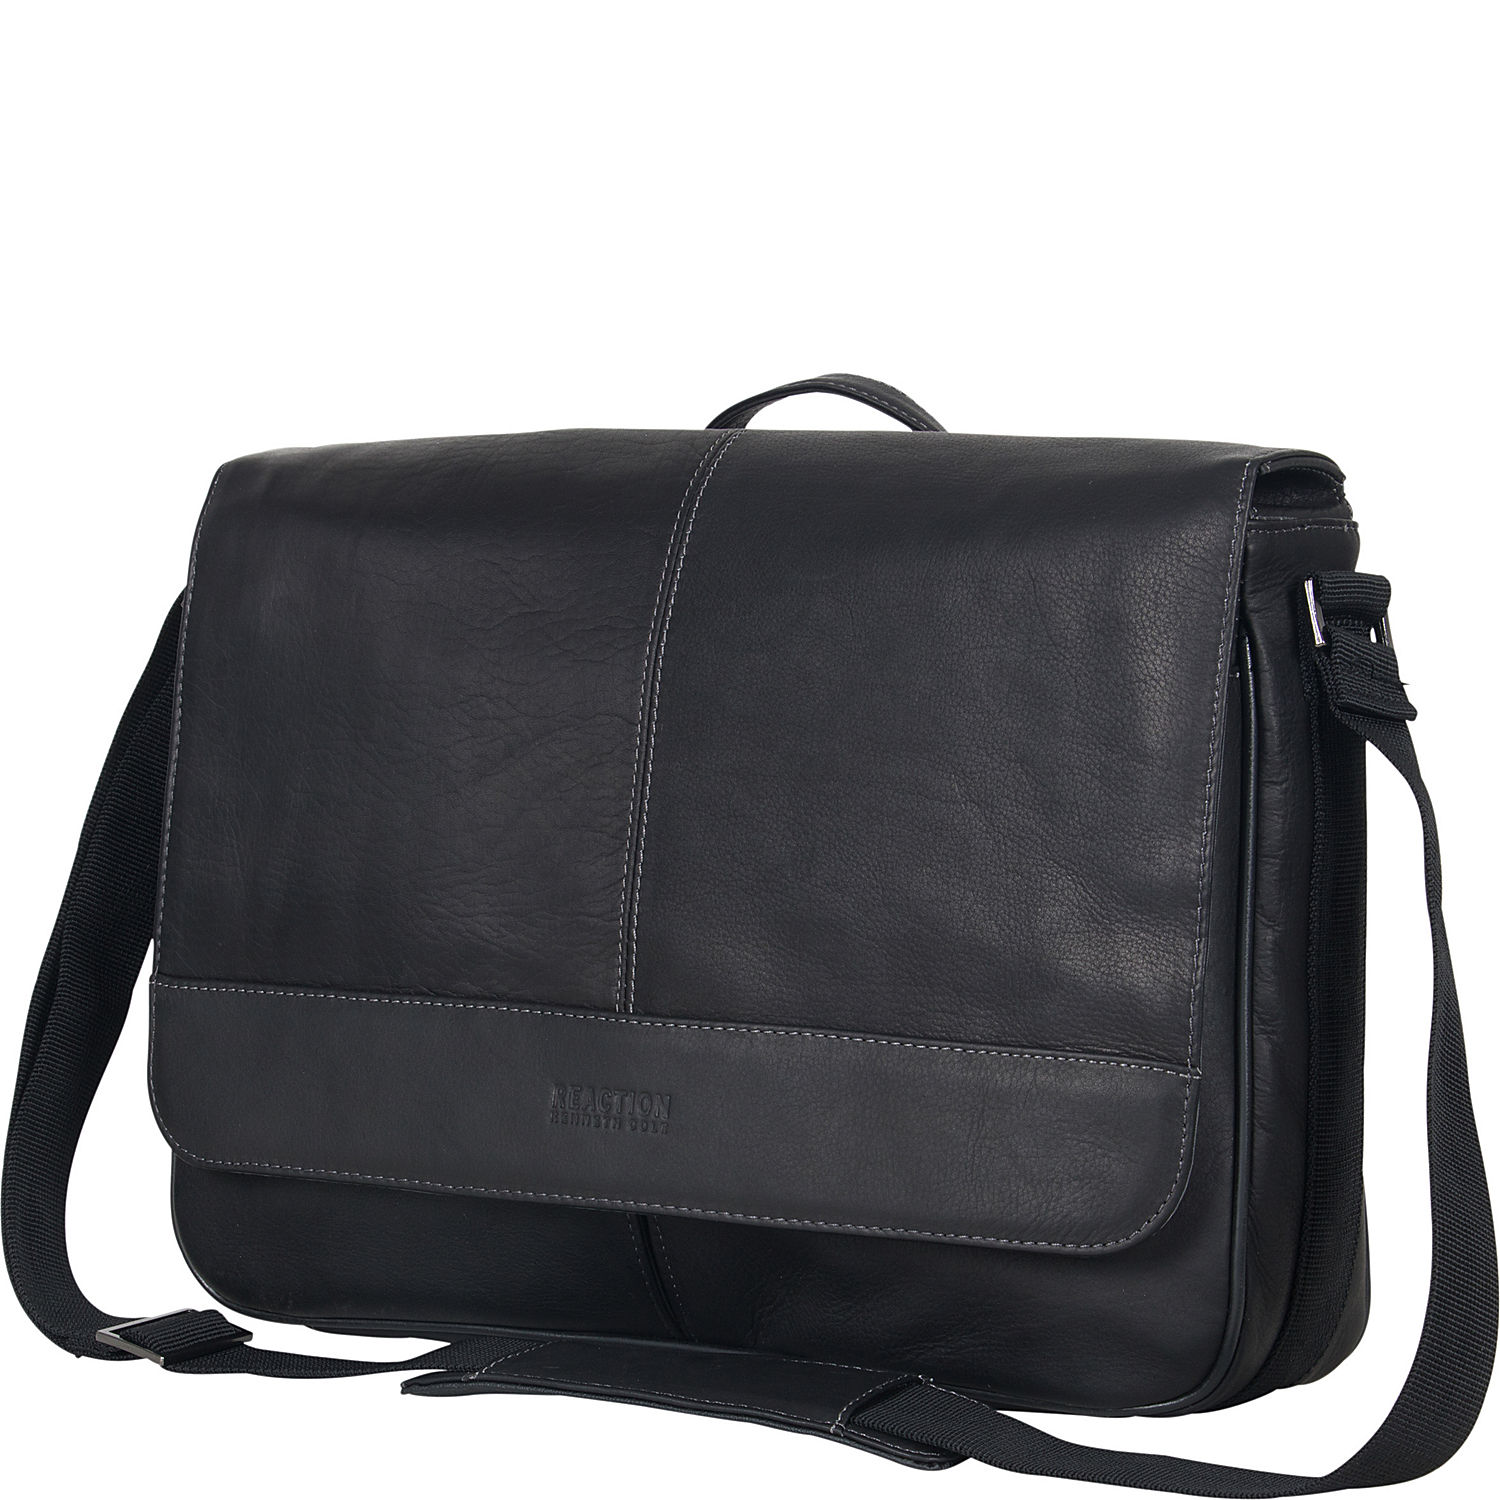 Men'S Professional Shoulder Bag – Shoulder Travel Bag